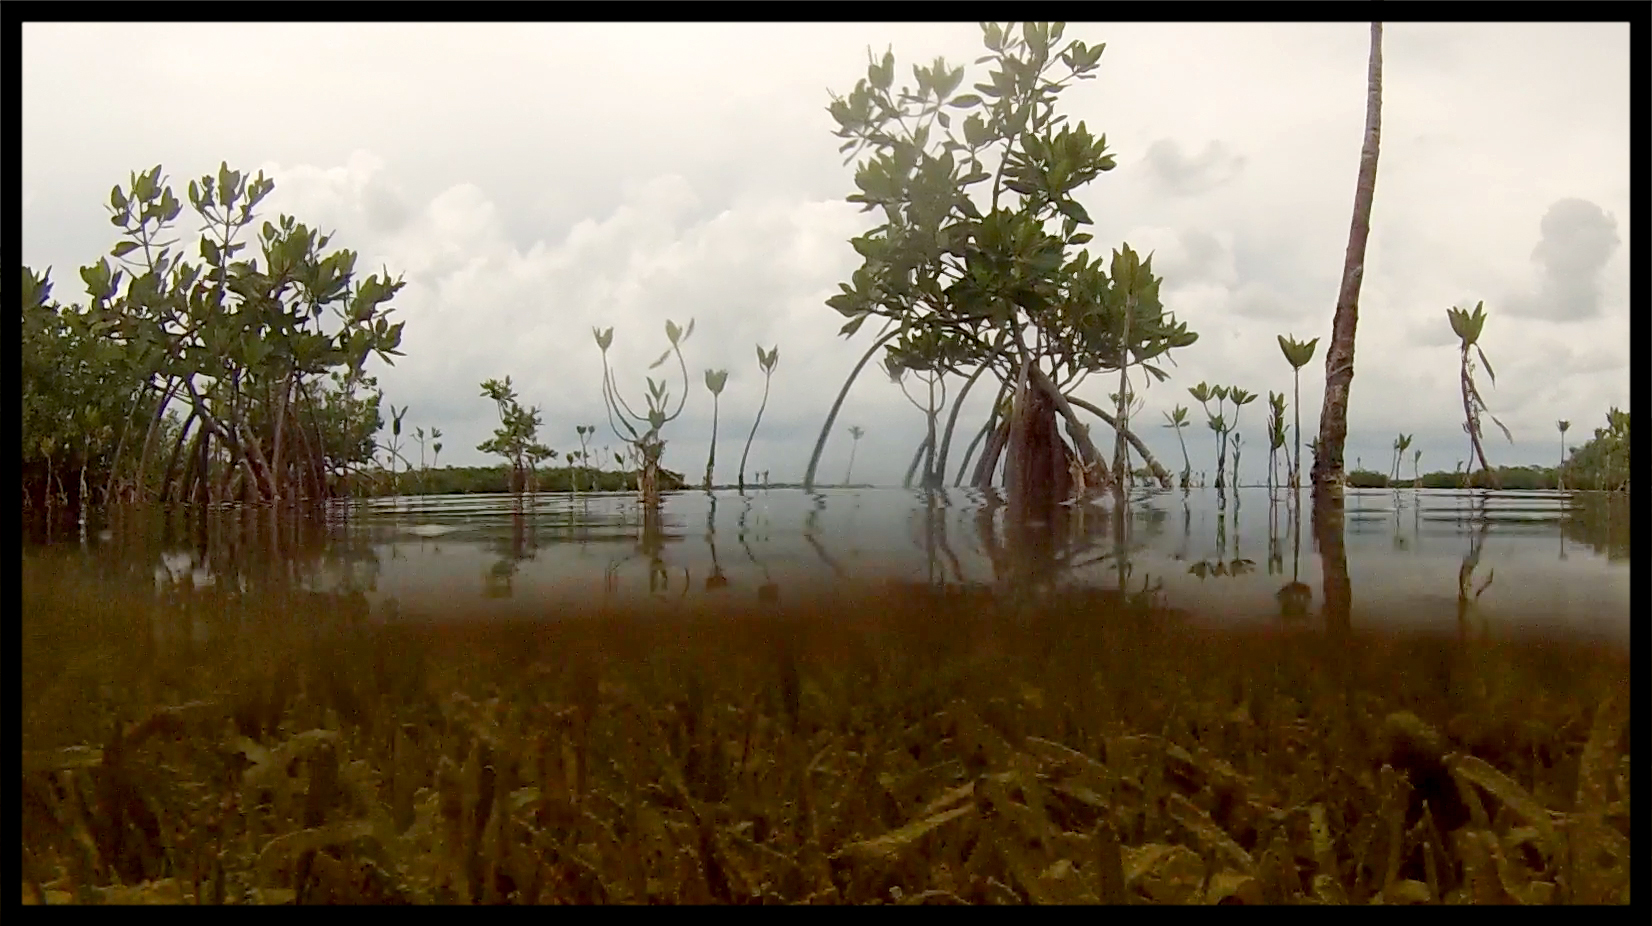 Red mangroves and thallassia.